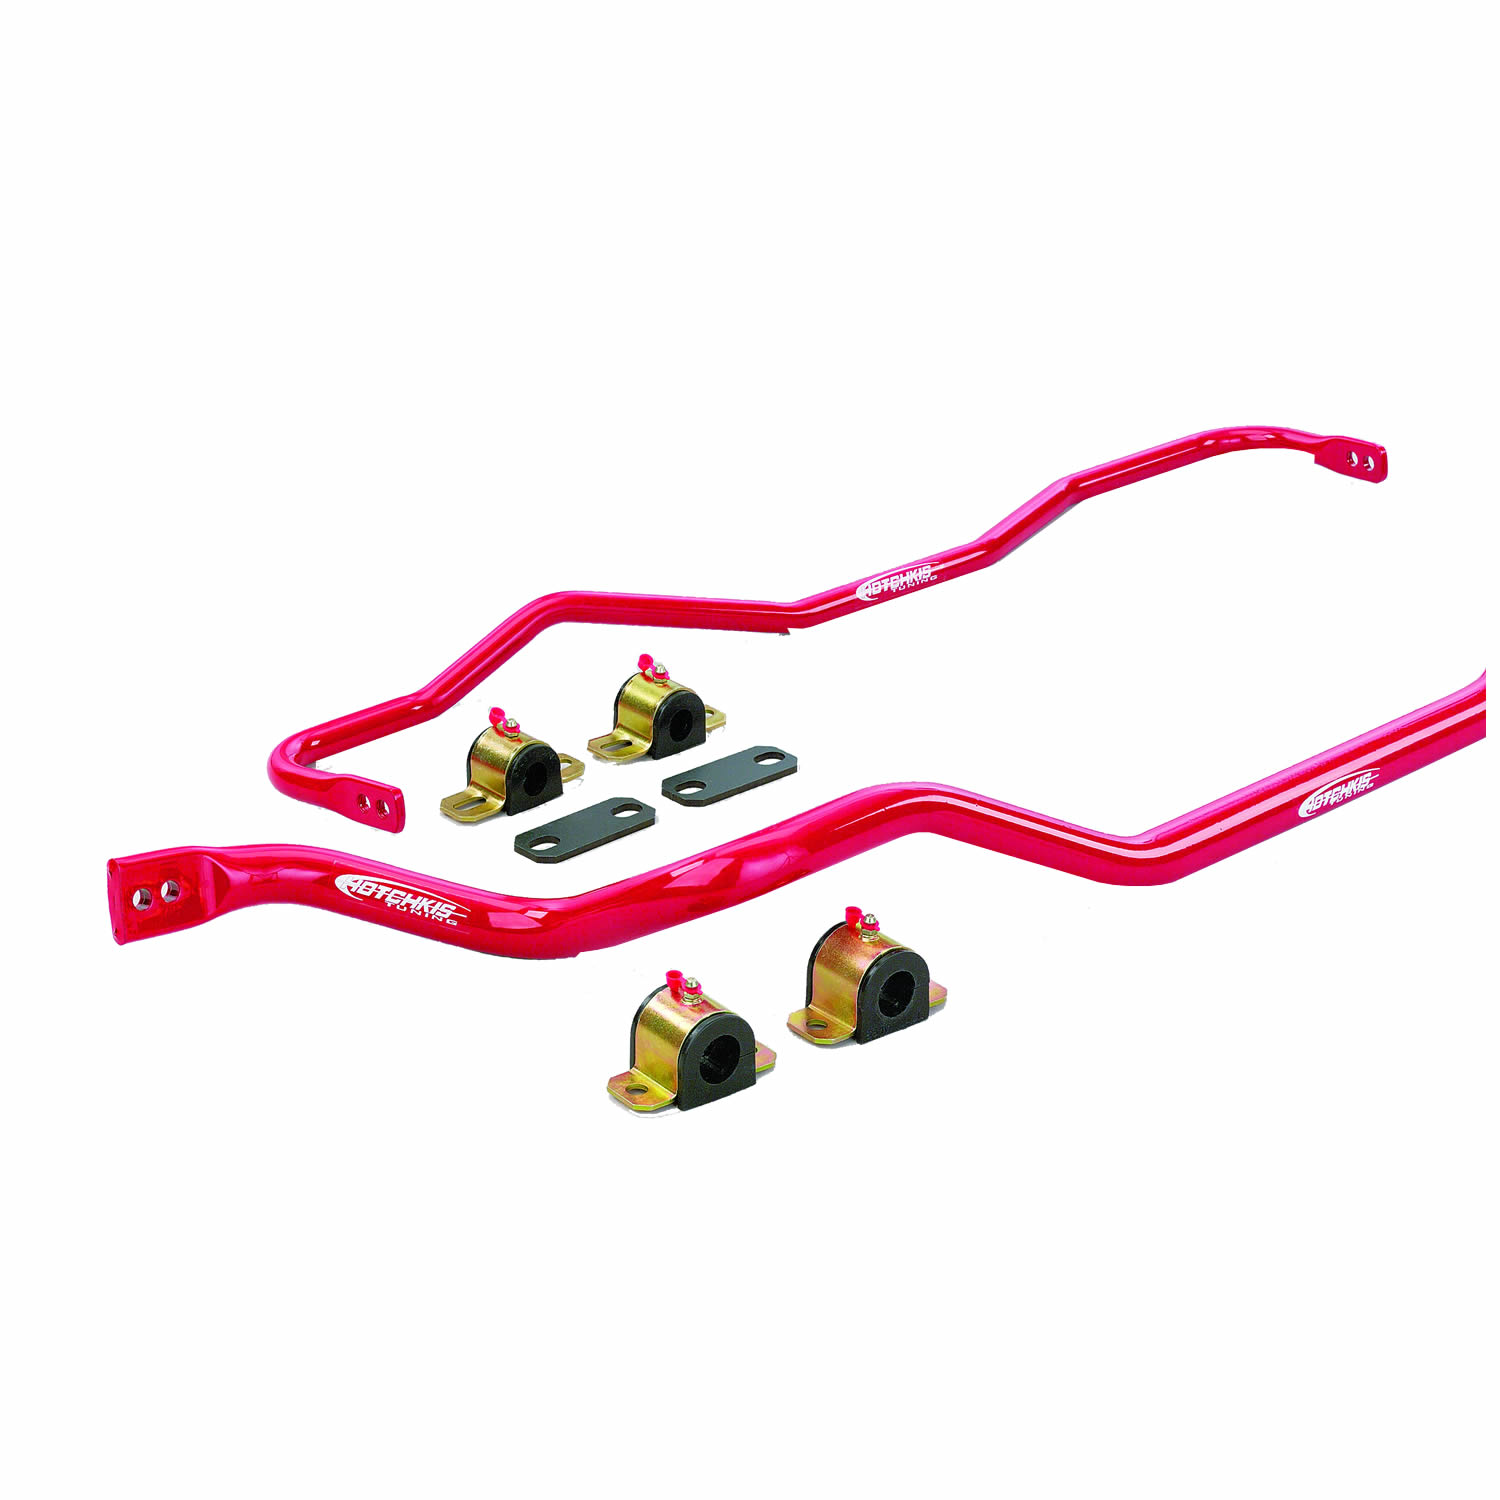 2001-2005 Lexus IS300 Sport Sway Bars from Hotchkis Sport Suspension